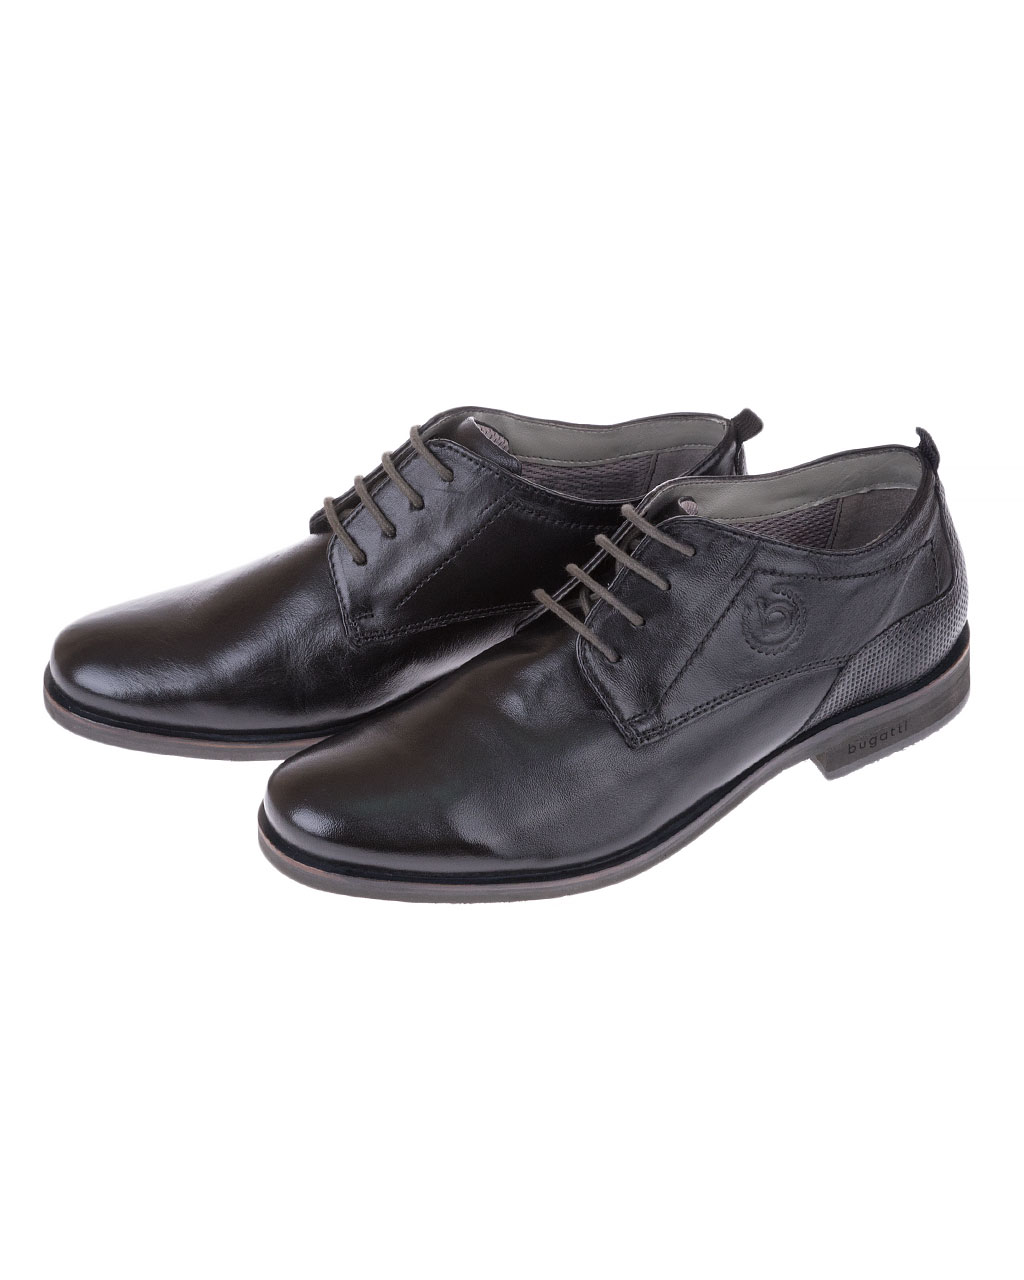 Men's shoes 312-59802-4000-1000/19-20 (2)